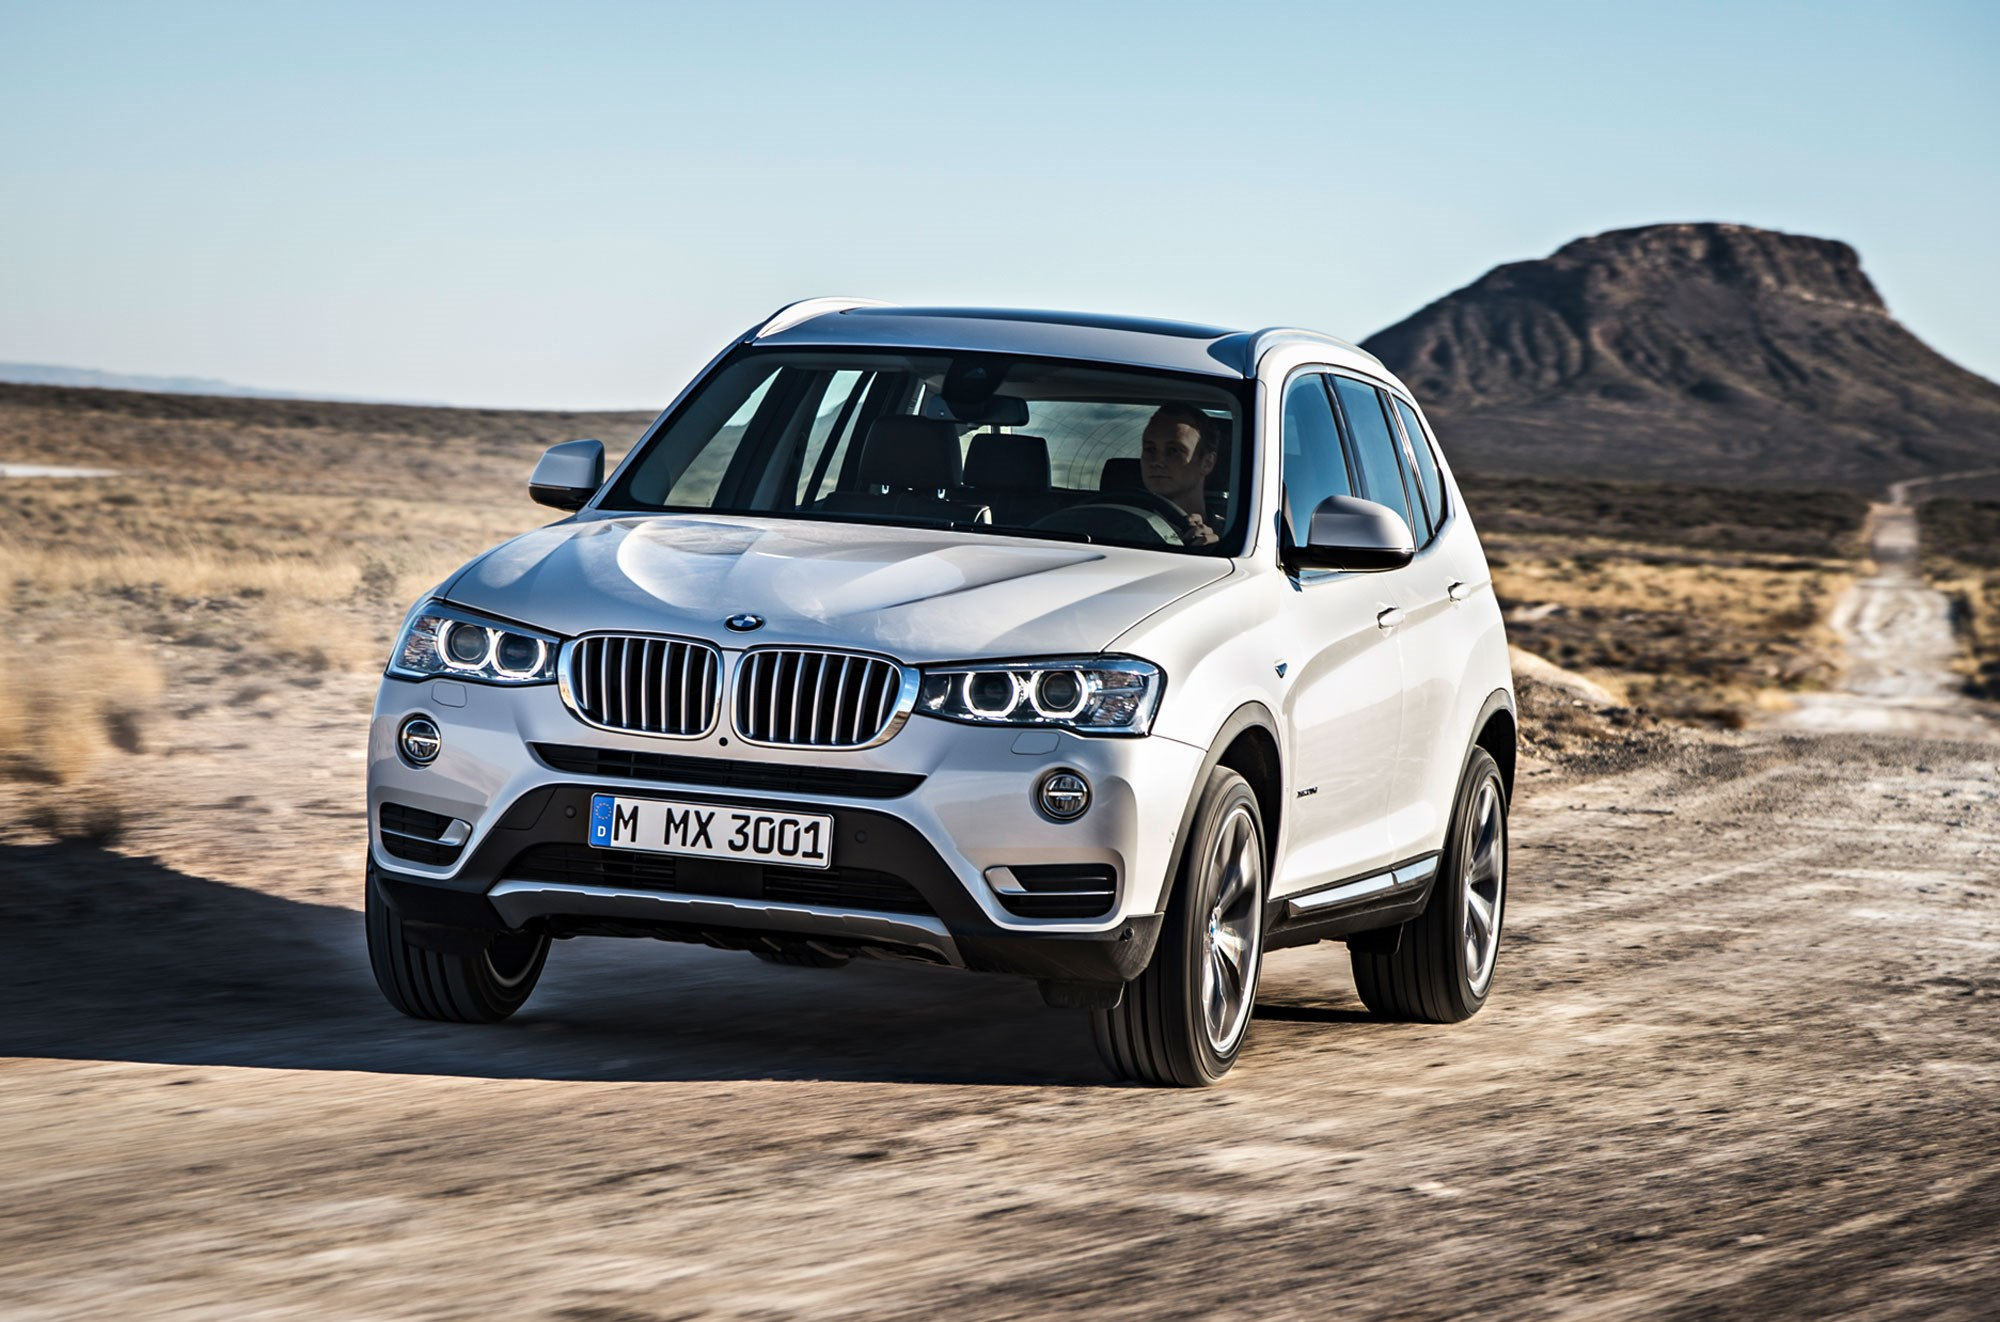 The bmw x3 was given a light facelift in the second half of 2014